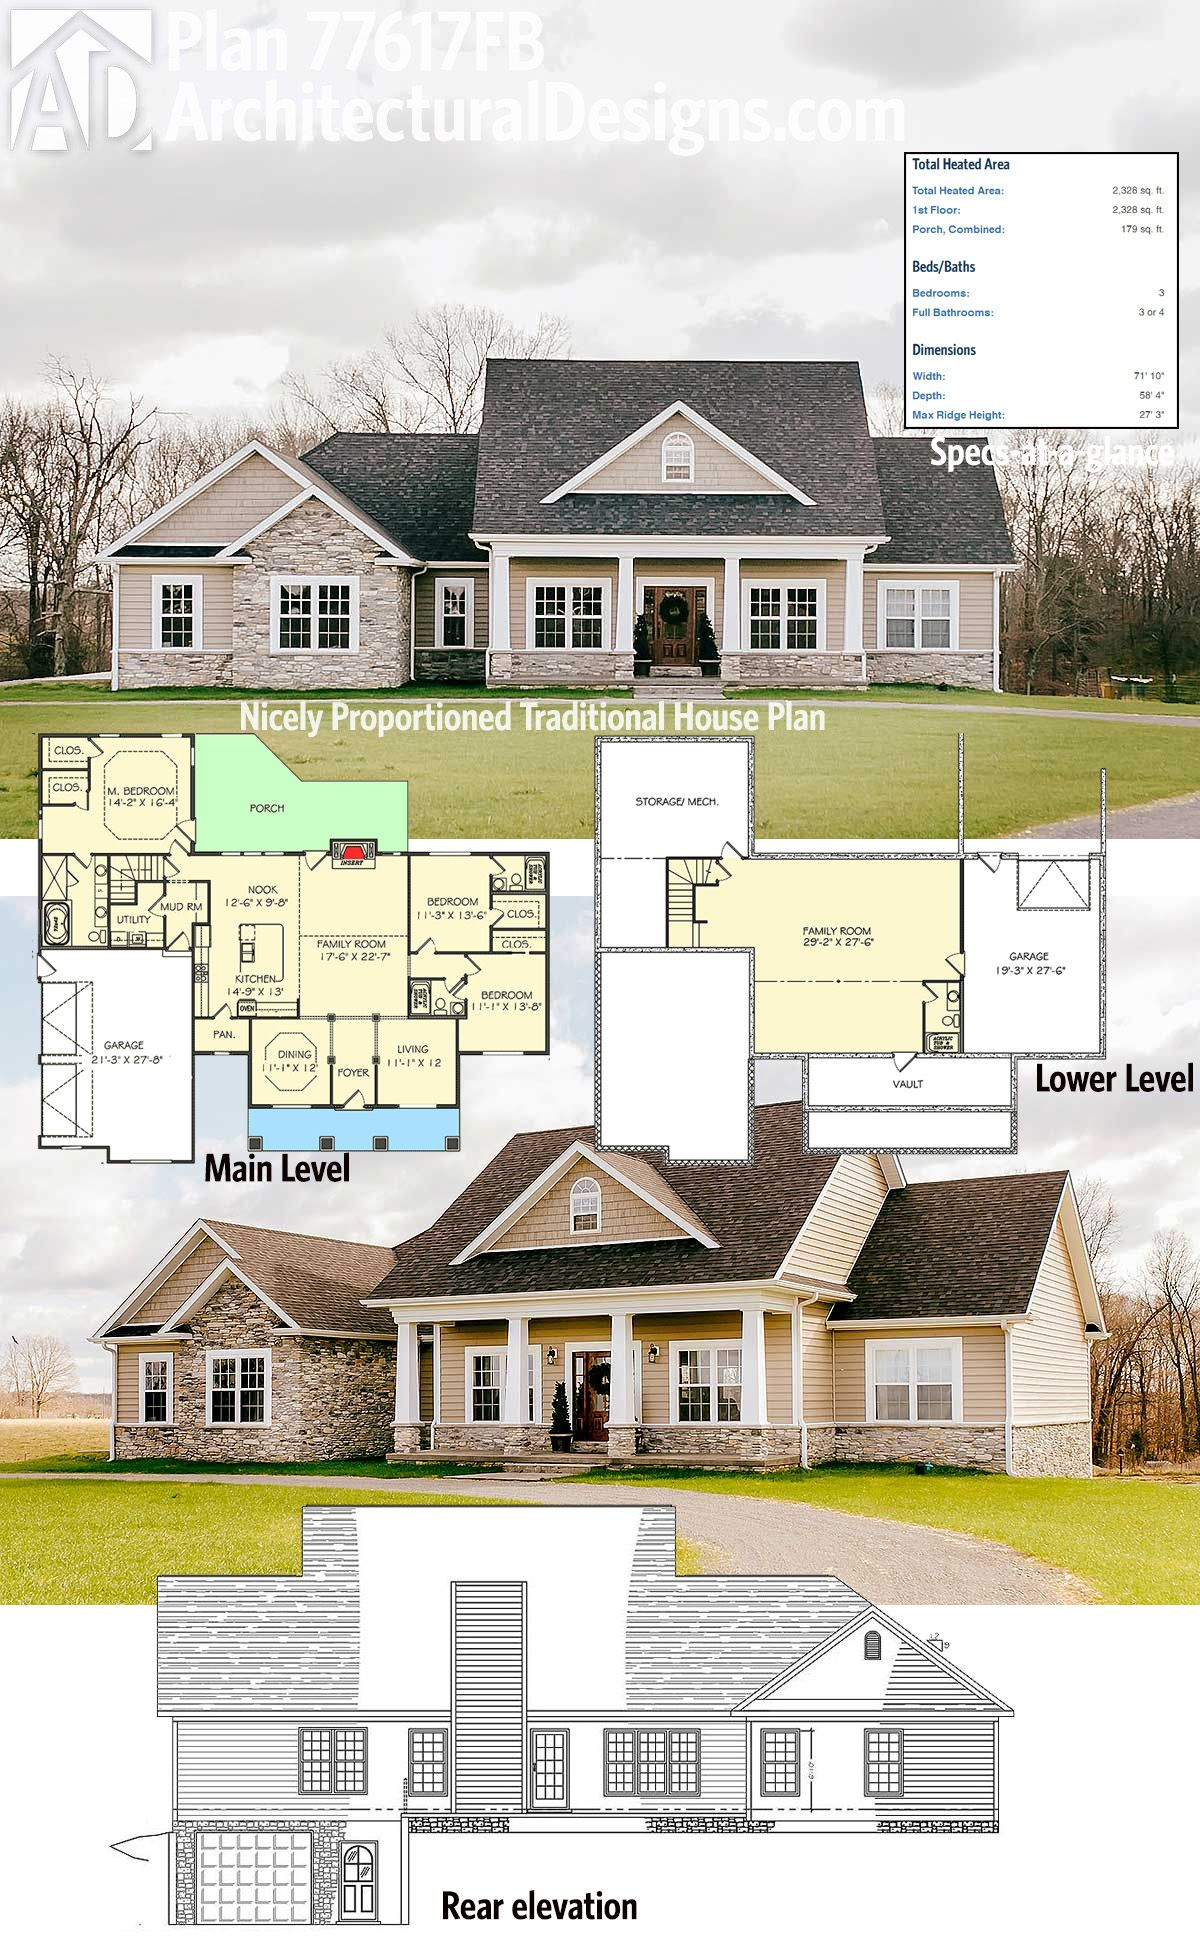 Architectural Designs 3 Bed Traditional House Plan Has Classic Good Looks,  A Side Load